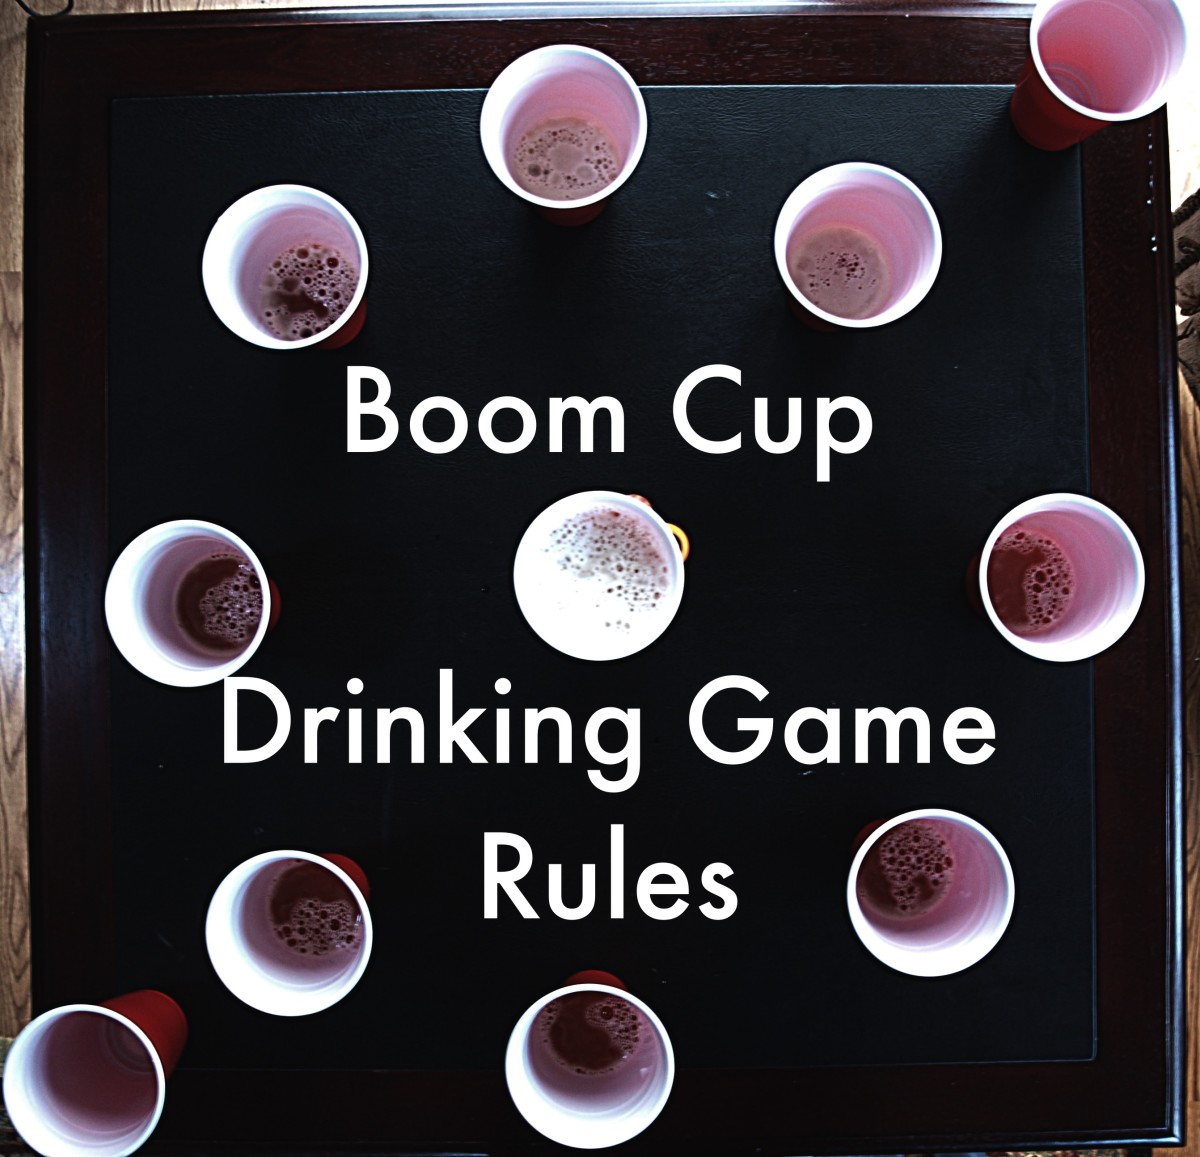 Find out how to play Boom Cup, a great drinking game for parties that will leave you buzzed but not drunk.